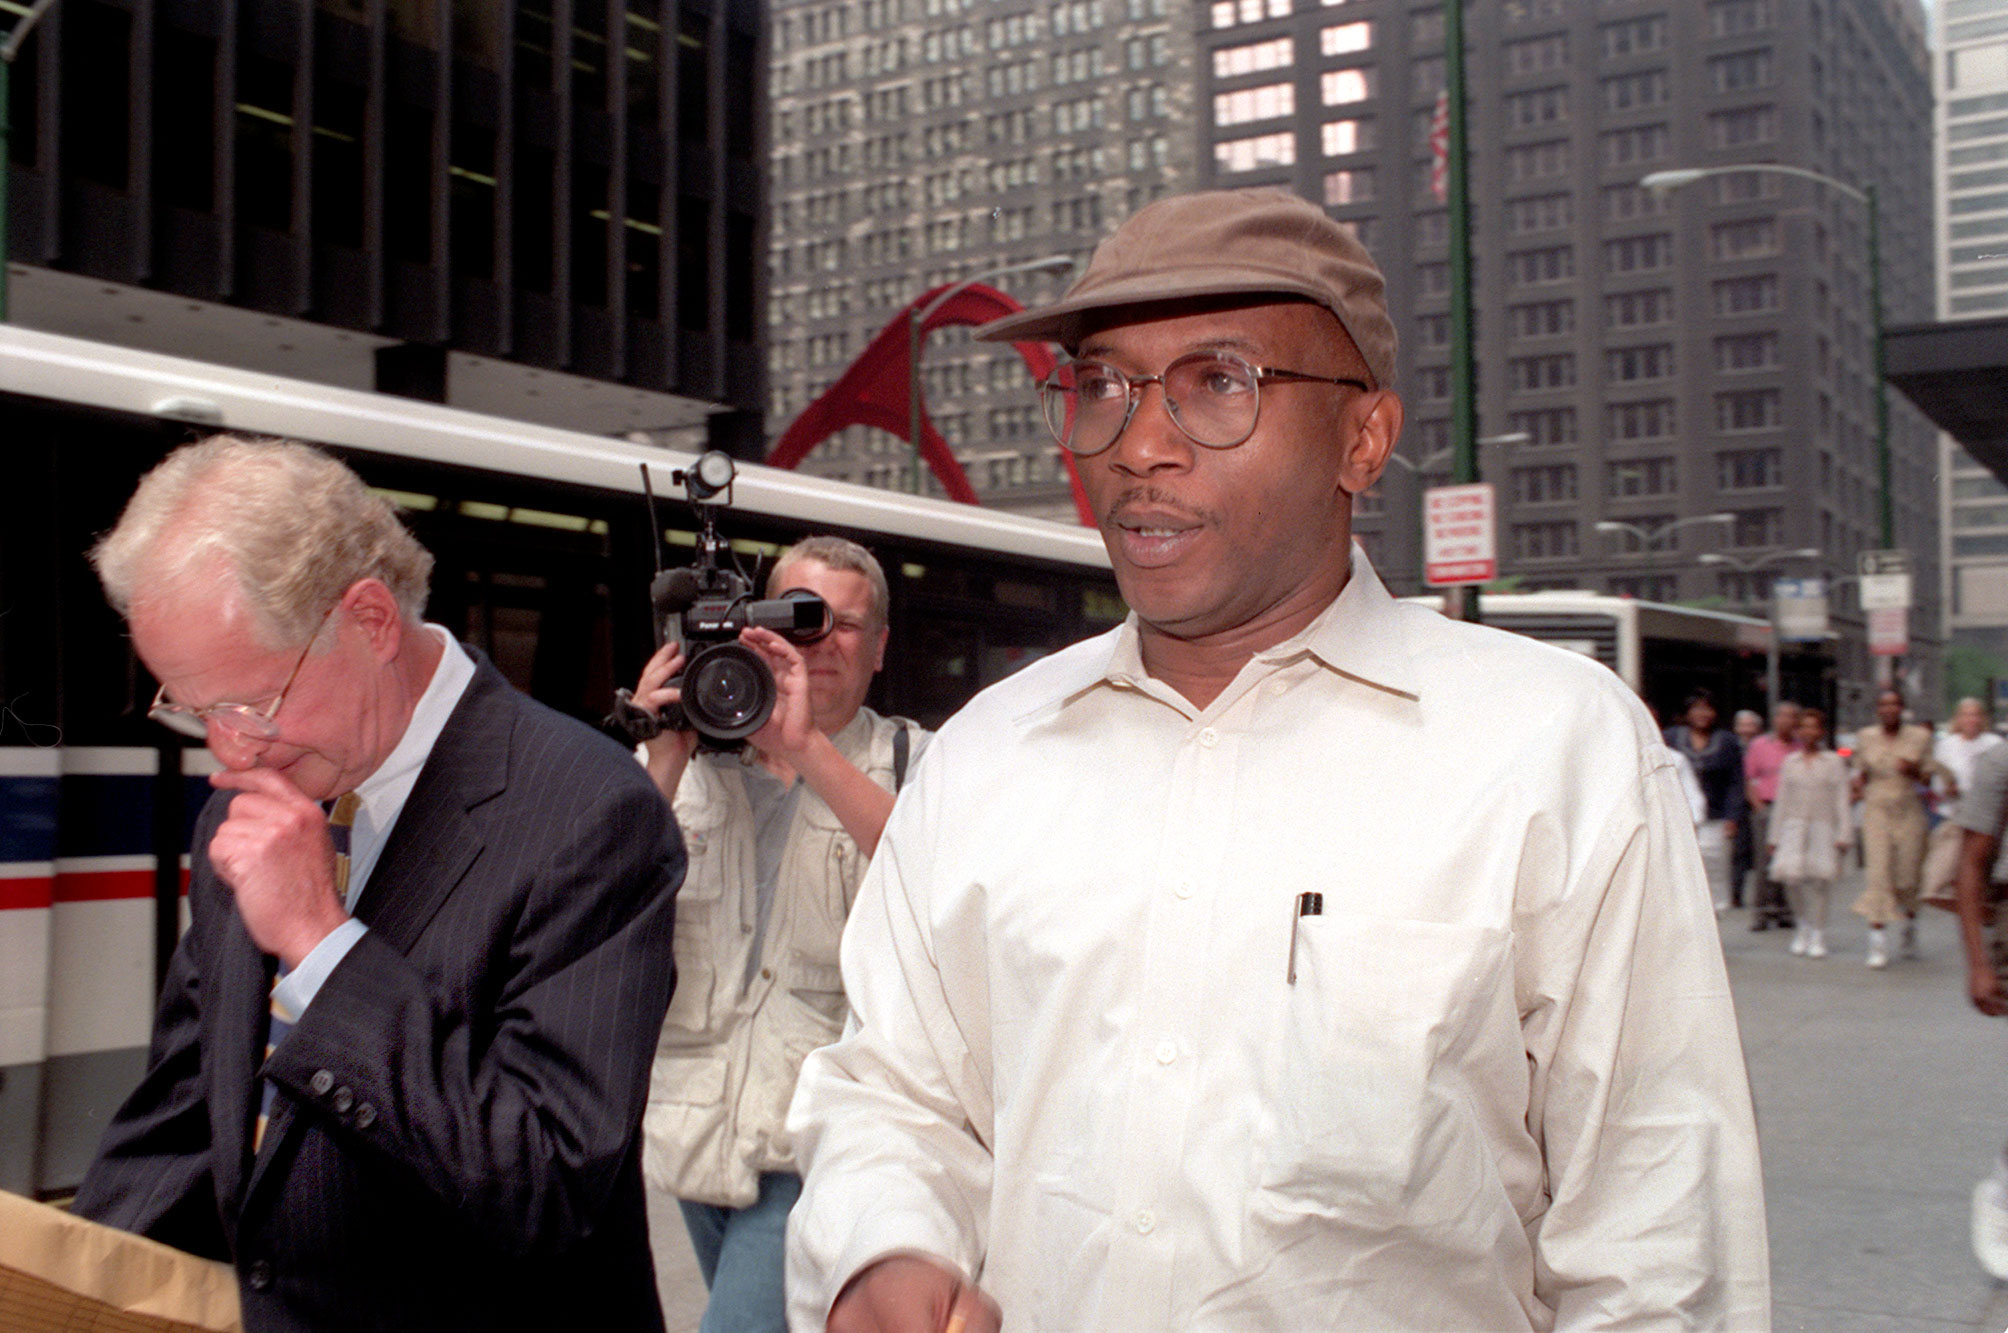 James Blassingame (in cap) leaves federal court in Chicago with his attorney Rick Halprin in July 1996 after being arraigned in Operation Silver Shovel.